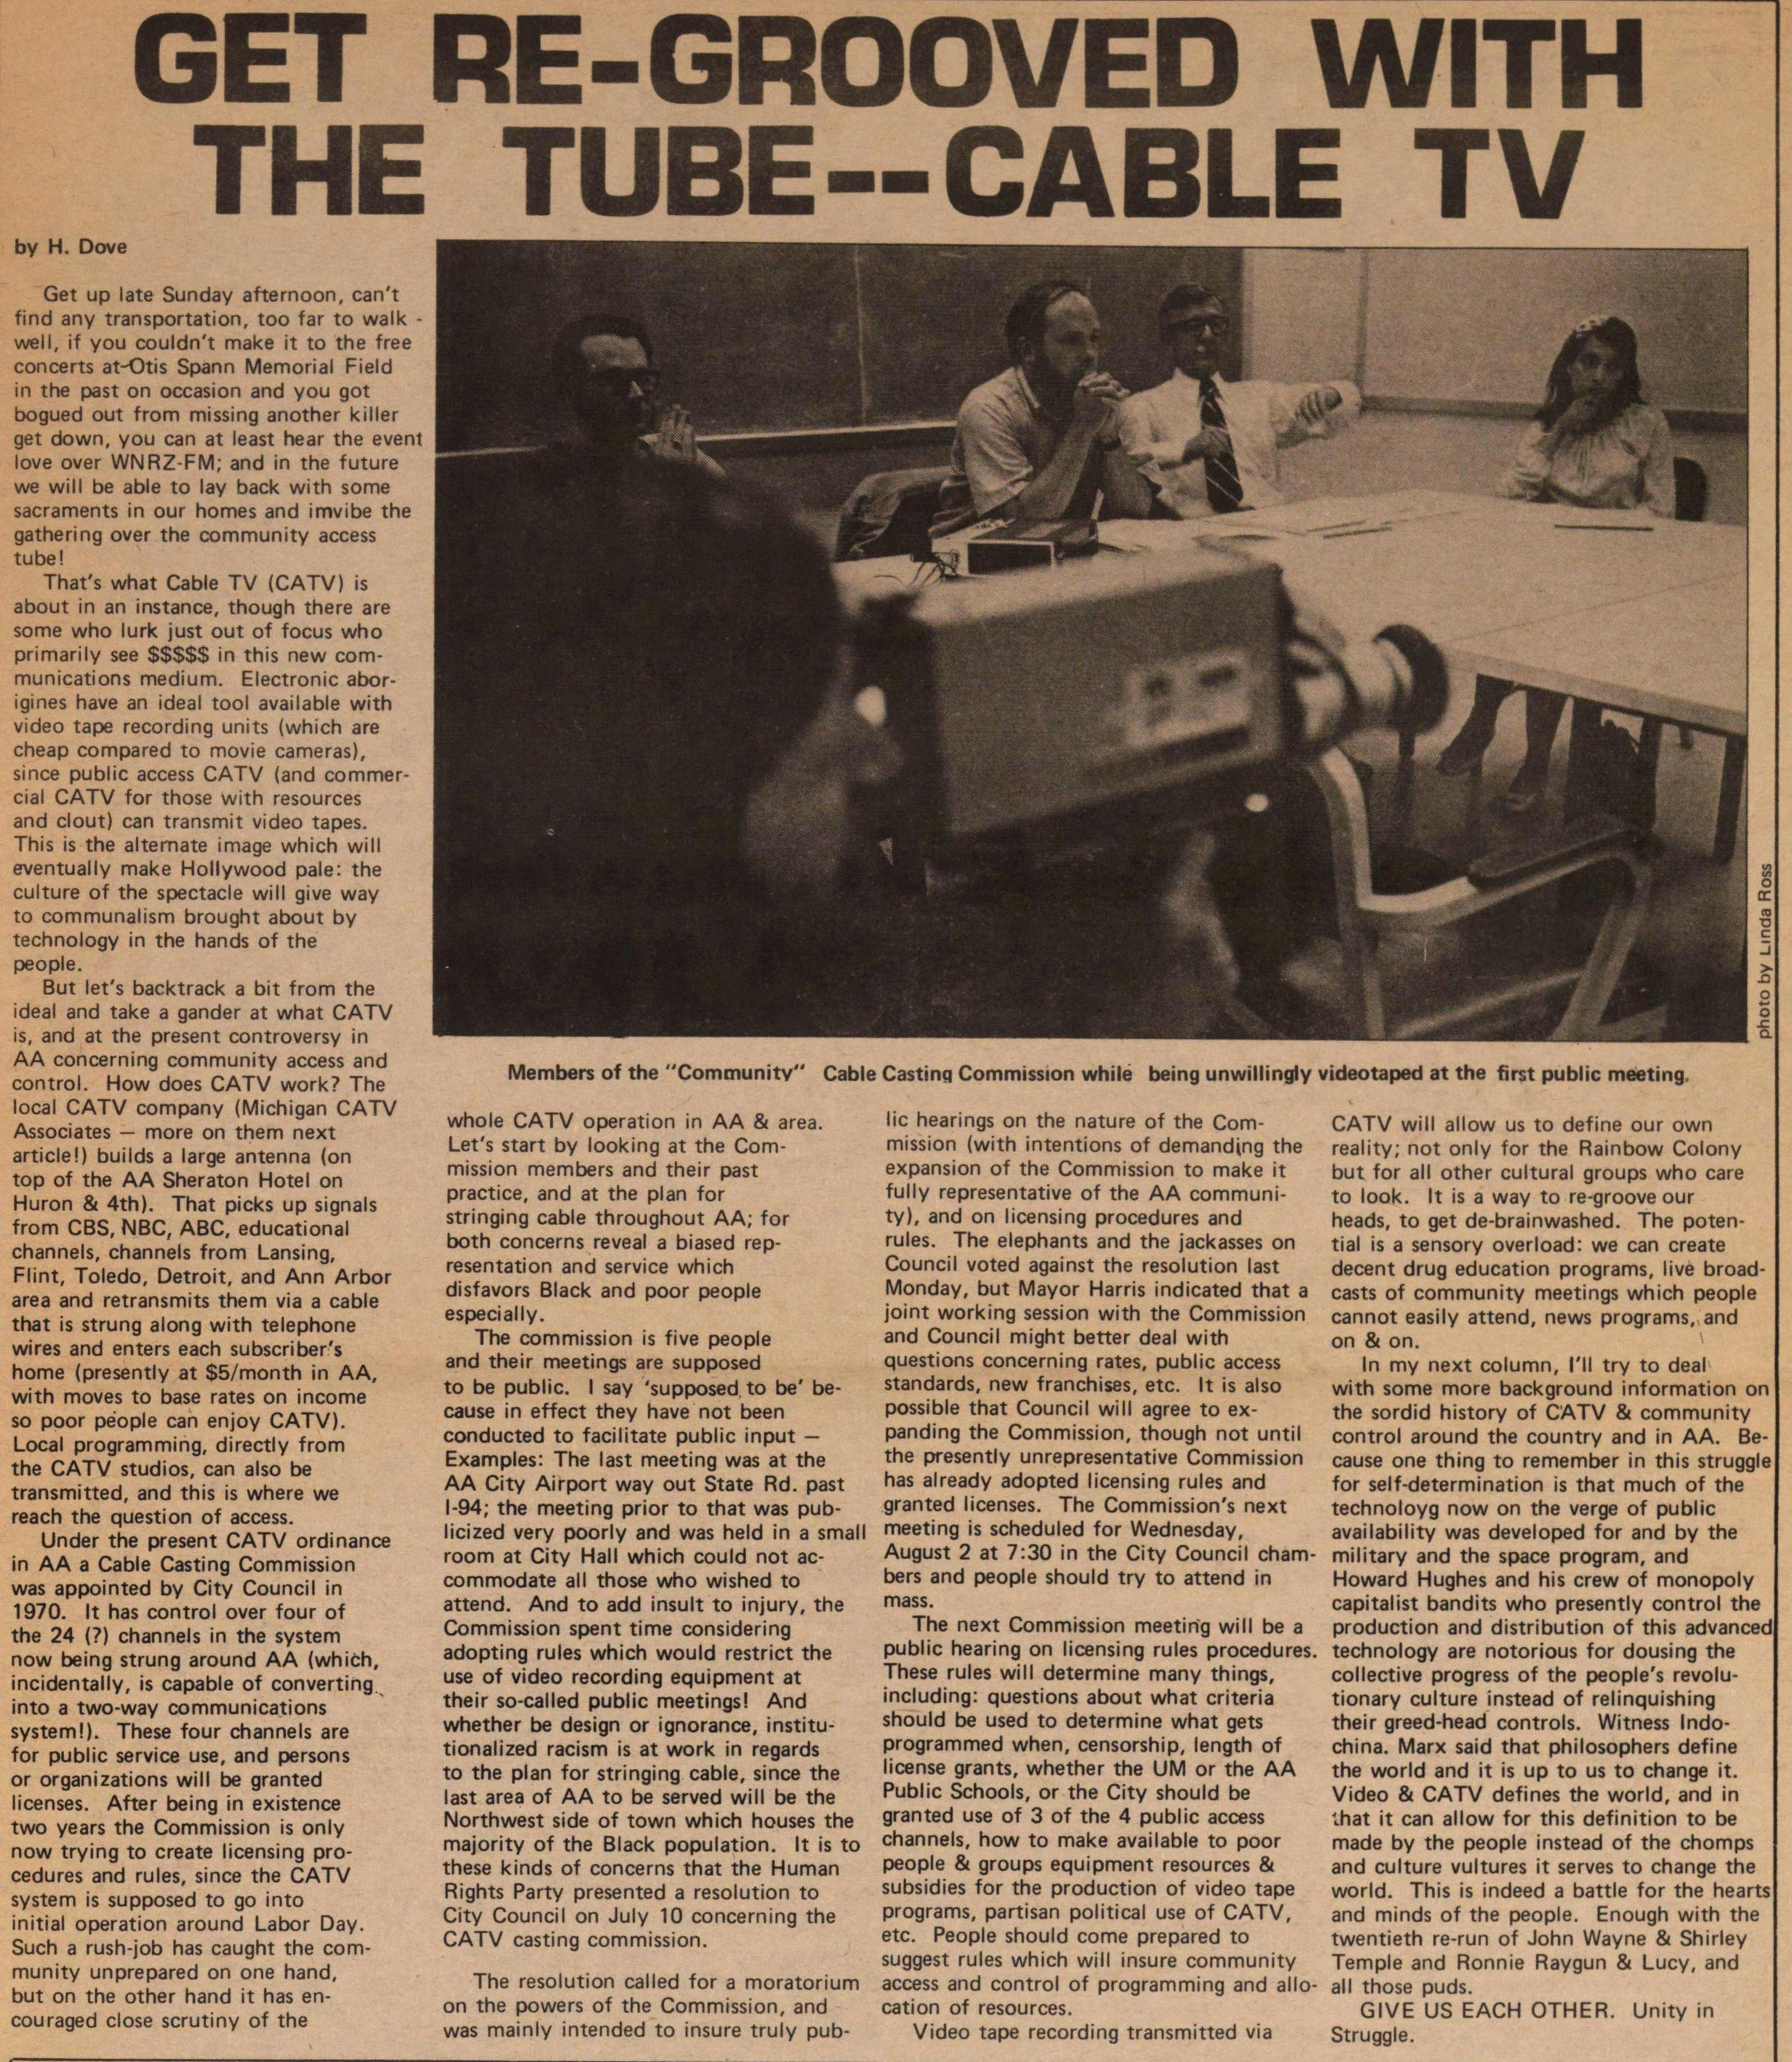 Get Re-grooved With The Tube--cable Tv image